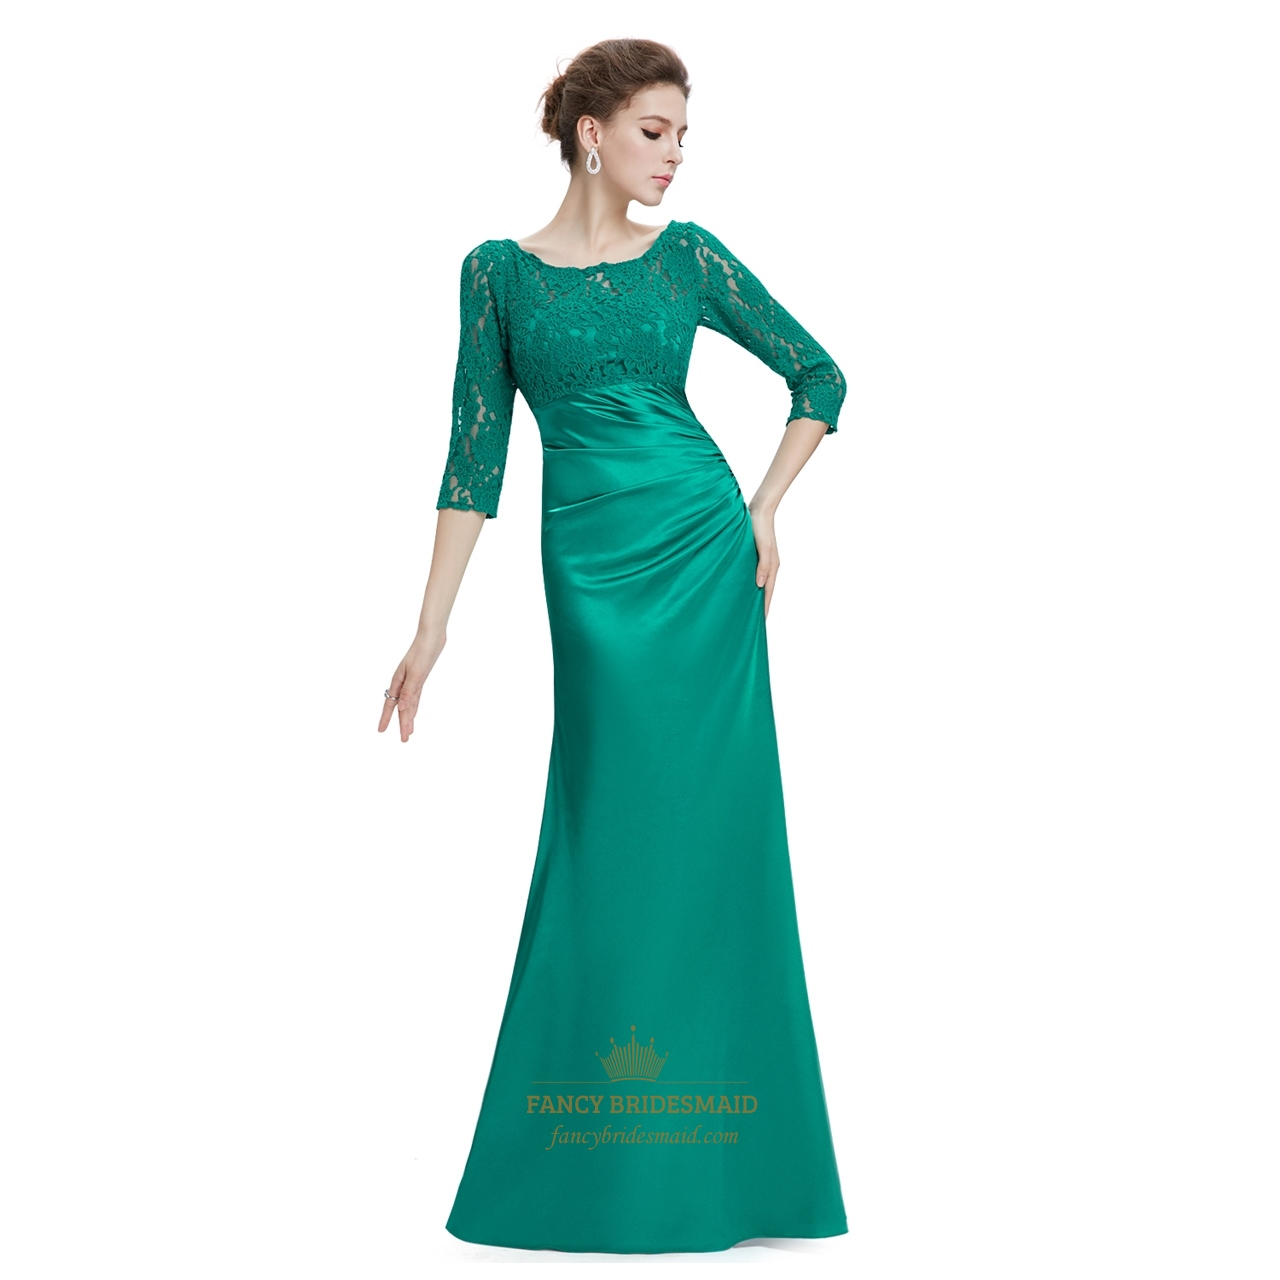 Emerald Green 3/4 Sleeves Illusion Neckline Prom Dresses With Lace ...